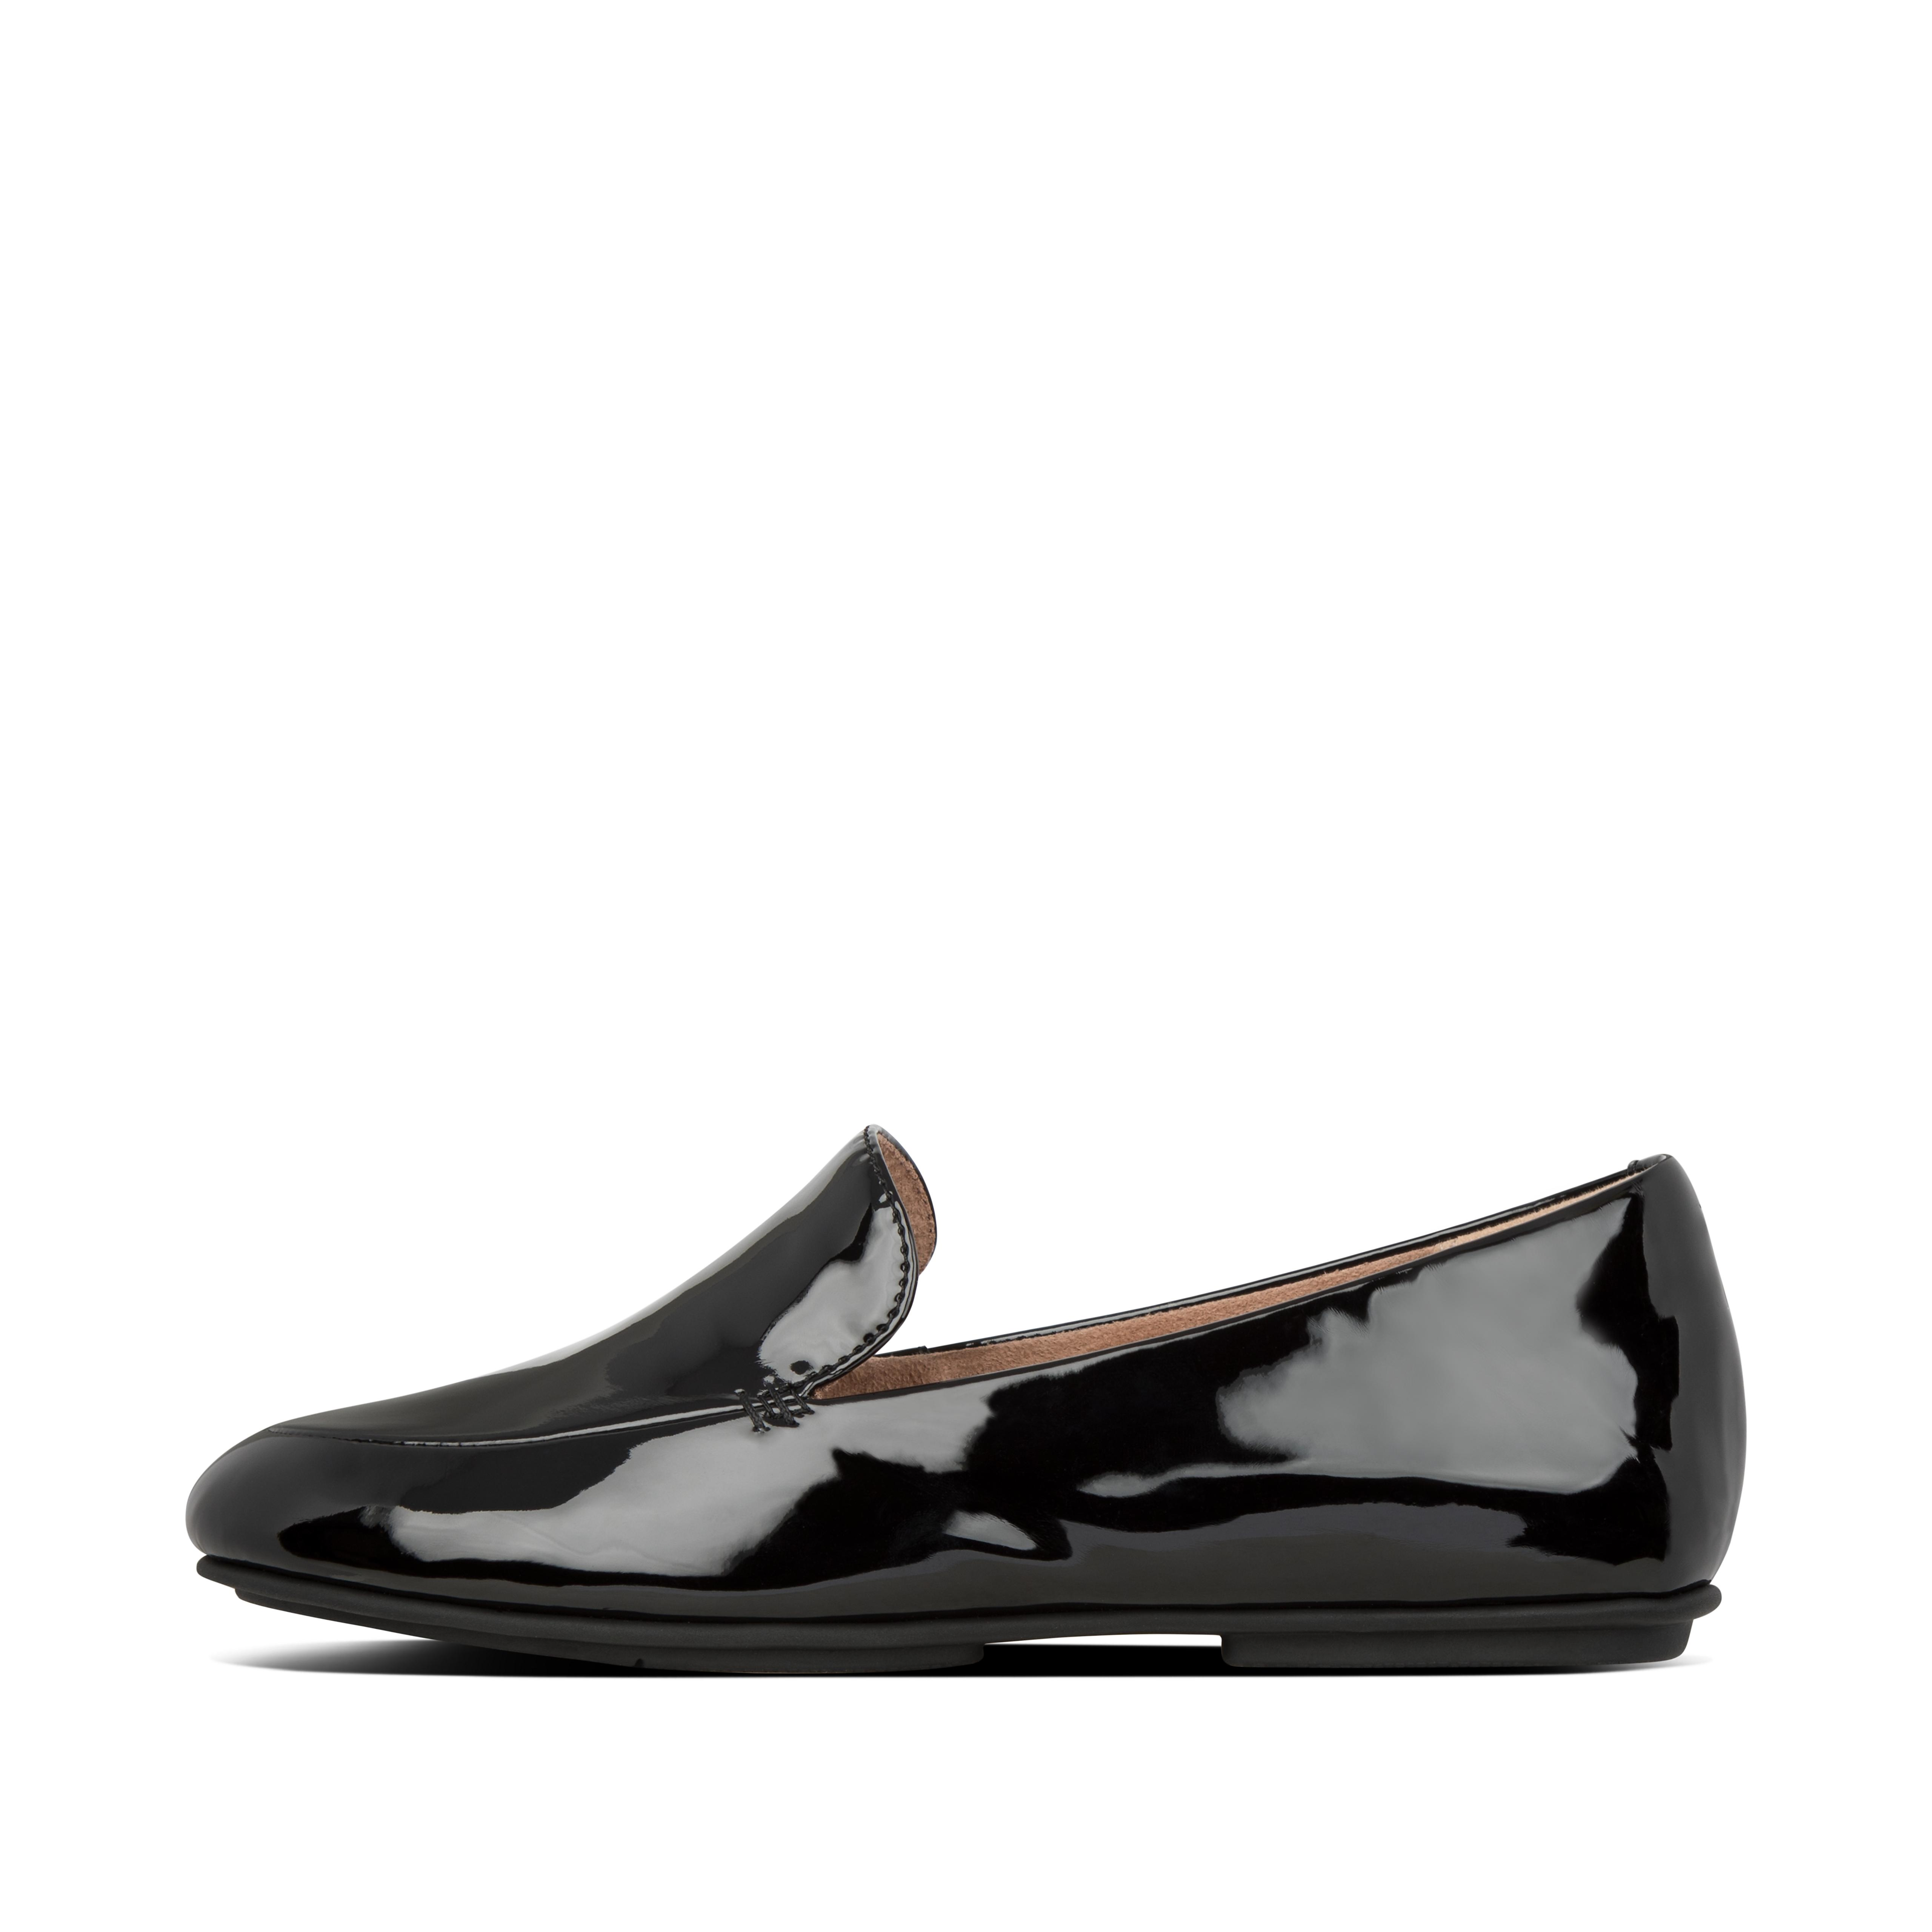 These patent faux-leather loafers are ultimate proof that less is more. Ultra-minimal, light, with an androgynous aesthetic, these\\\'ll add class to every outfit you wear them with. Yet they deliver major comfort and cushioning thanks to their anatomically shaped footbed and our \\\'bouncy\\\' Dynamicush™ tech hidden in a classic \\\'flat sole\\\'. These patent loafers come in black and taupe finishes.